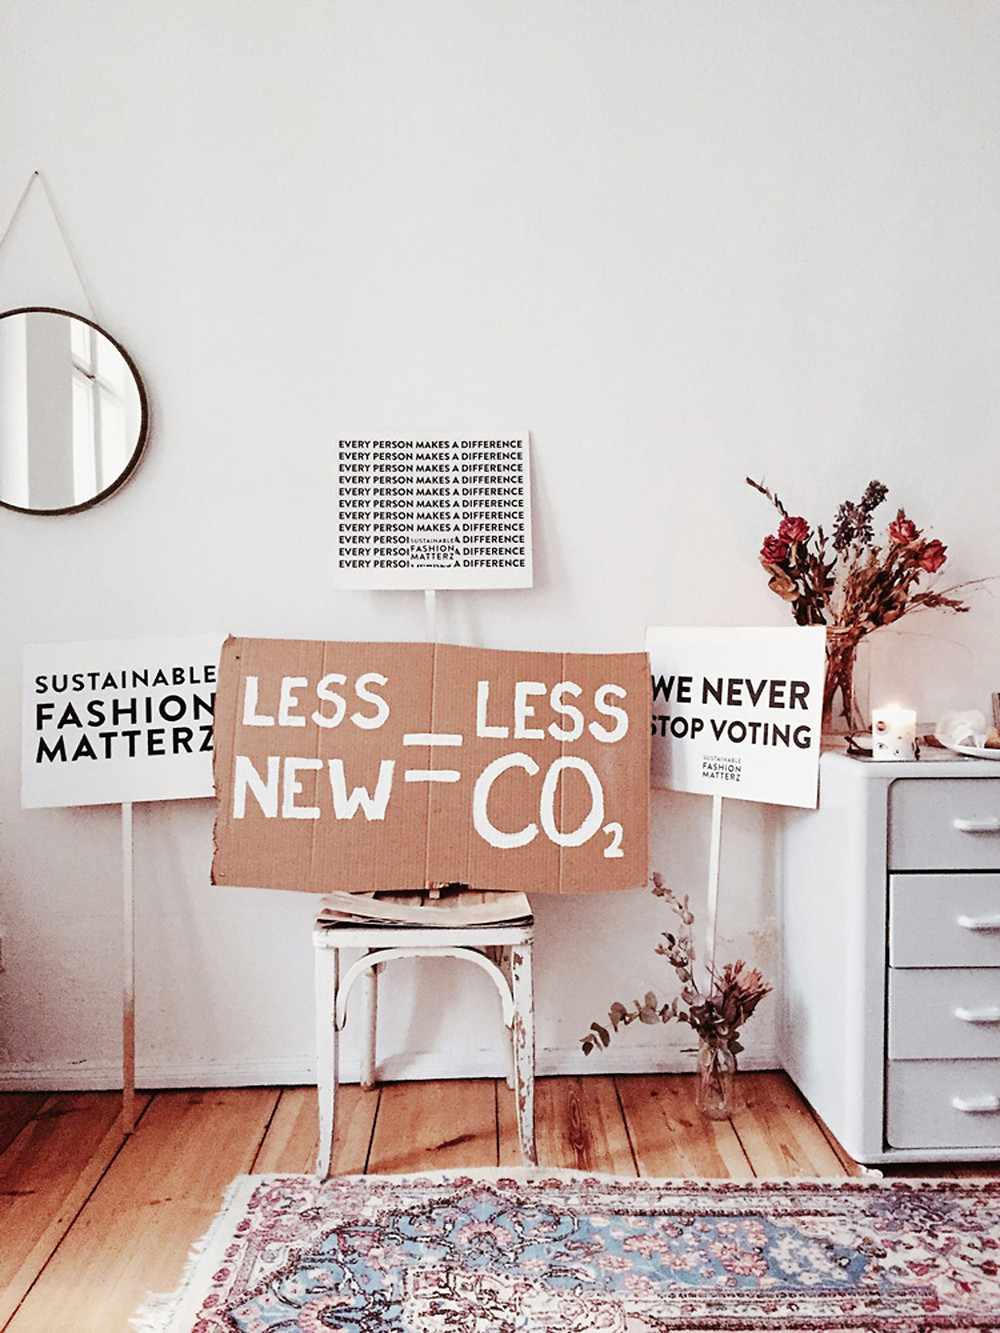 A carboard piece put on a chair that says: Less New = Less CO2. There are also other boards saying: Sustainable Fashion Matterzz and We never stop voting